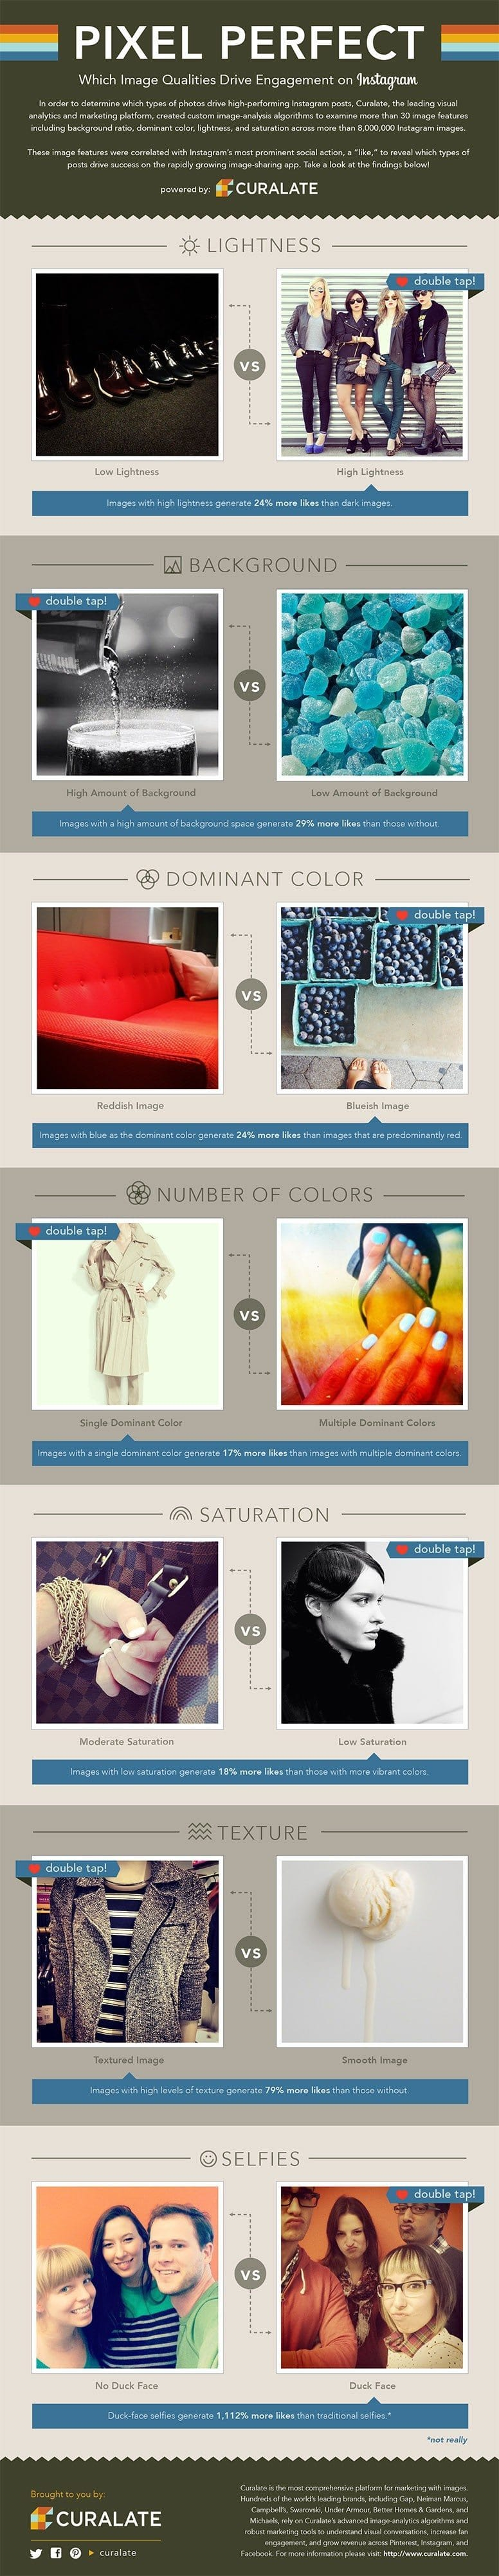 Curalate Infographic - How to Get More Instagram Followers